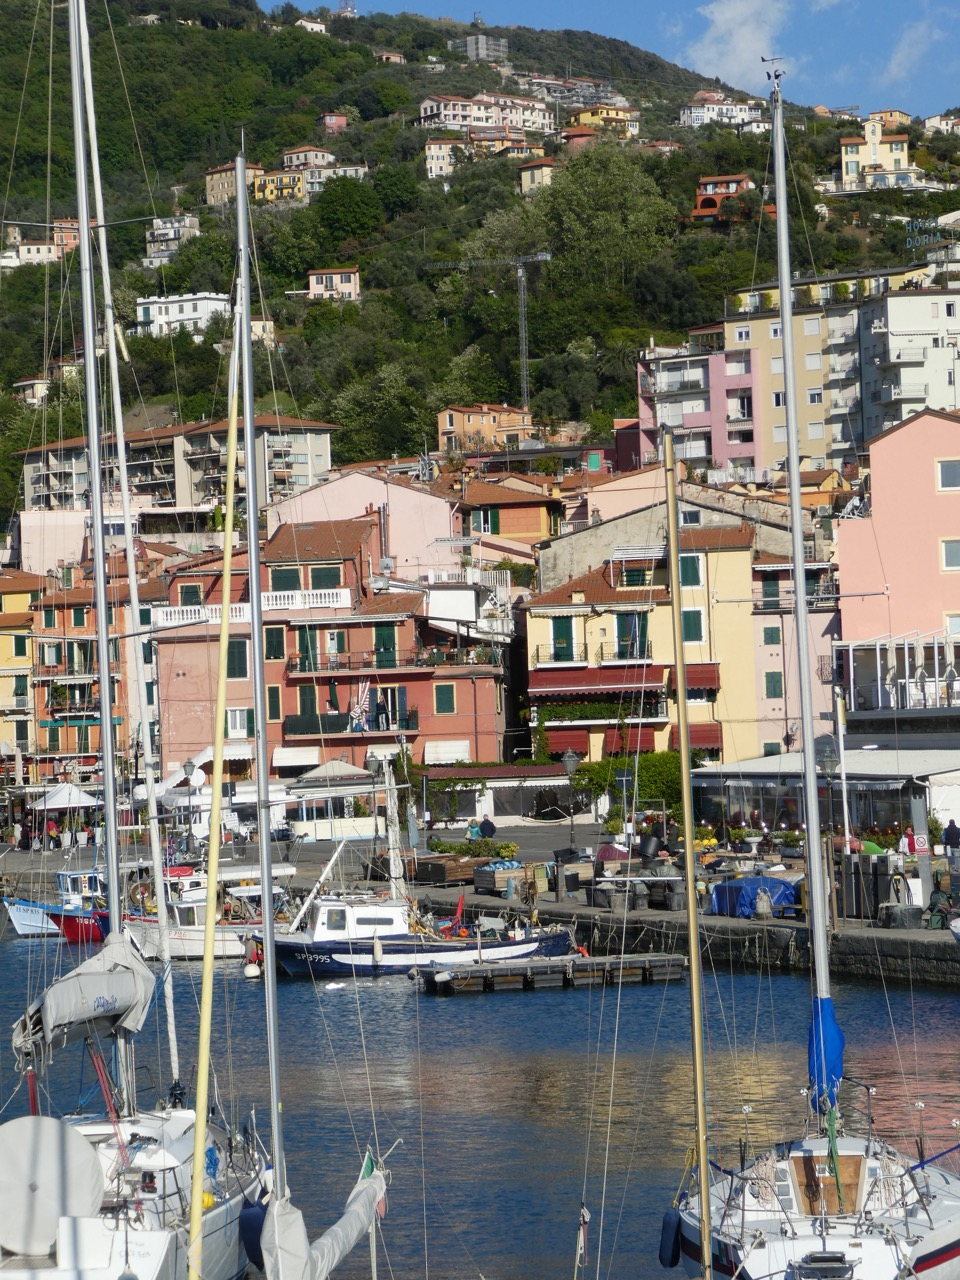 Property Site in Lerici